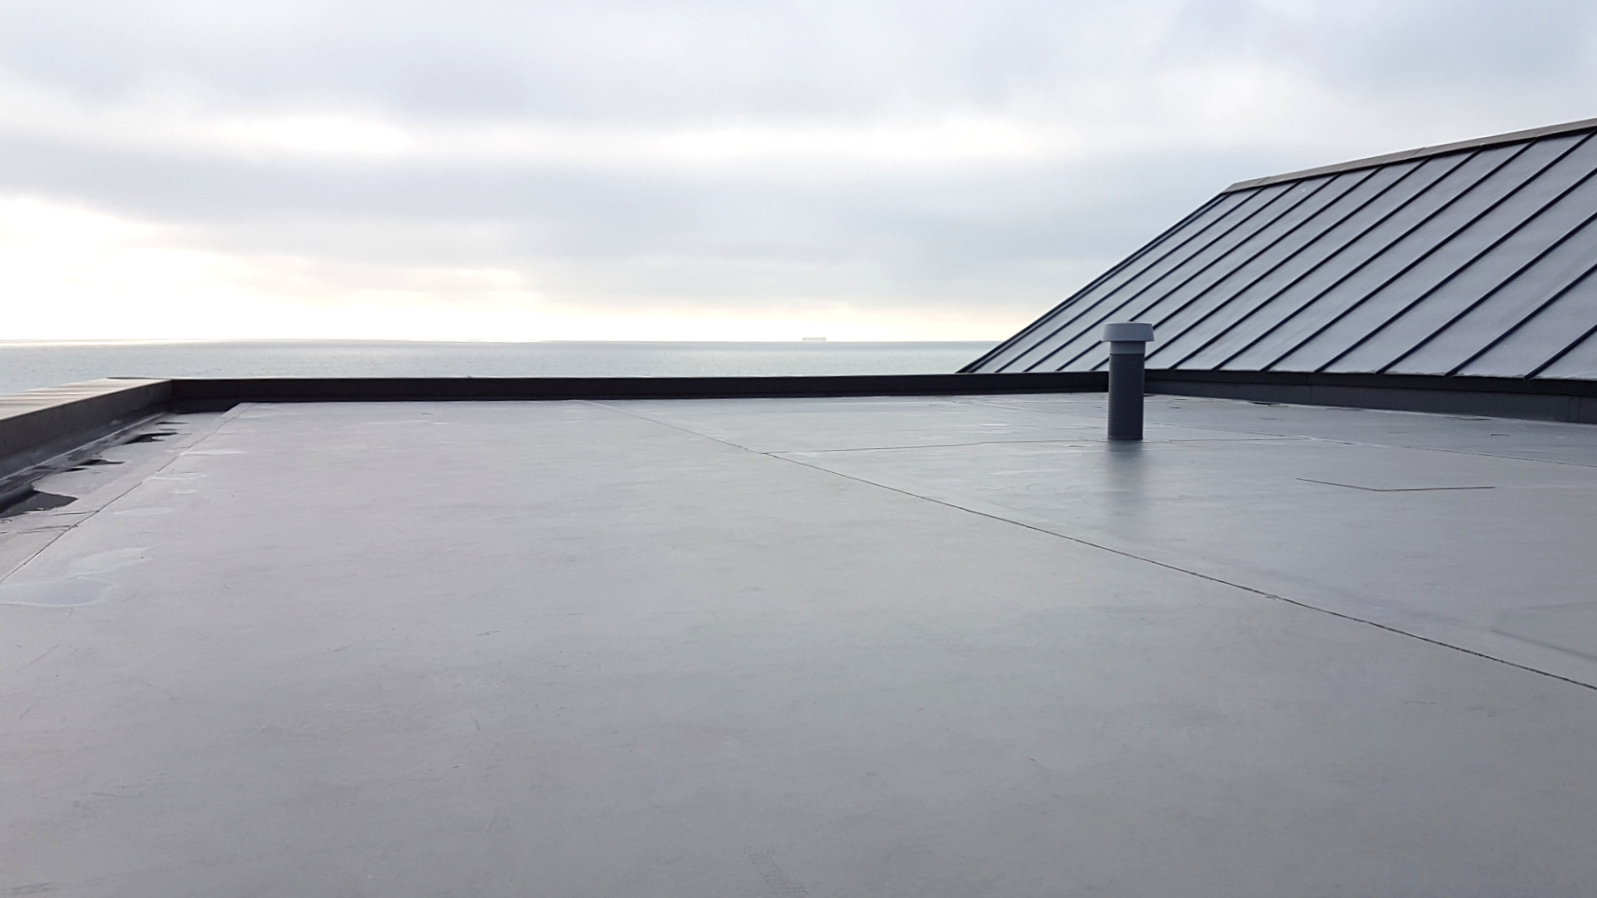 Sarnafil Roofing | Single Ply Roofing Installation | Salmon